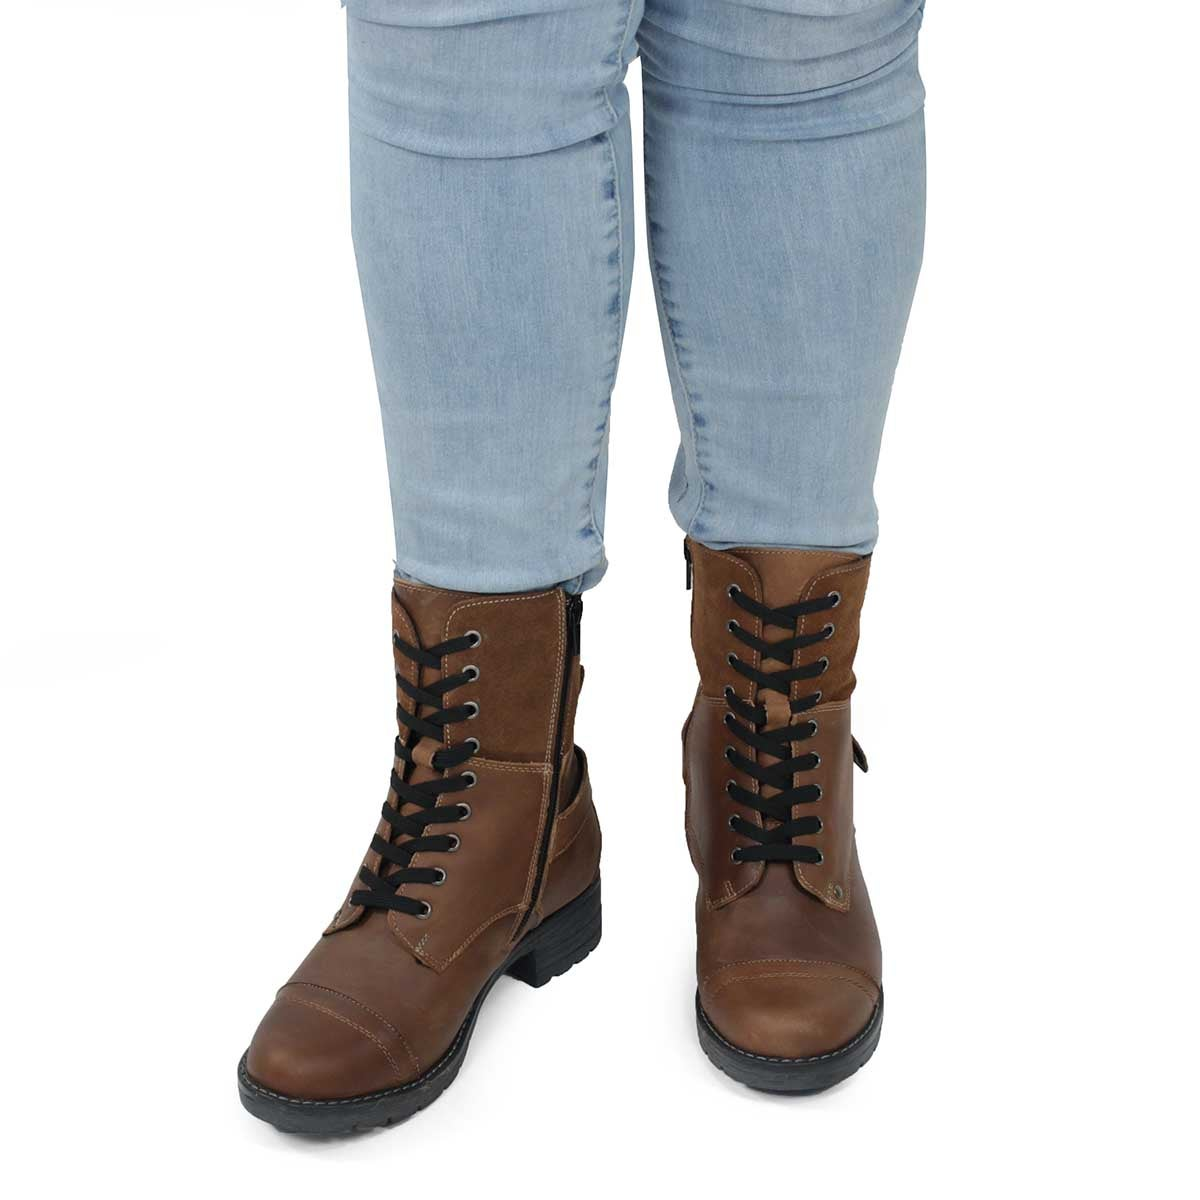 Lds Deedee 2 brown combat boot